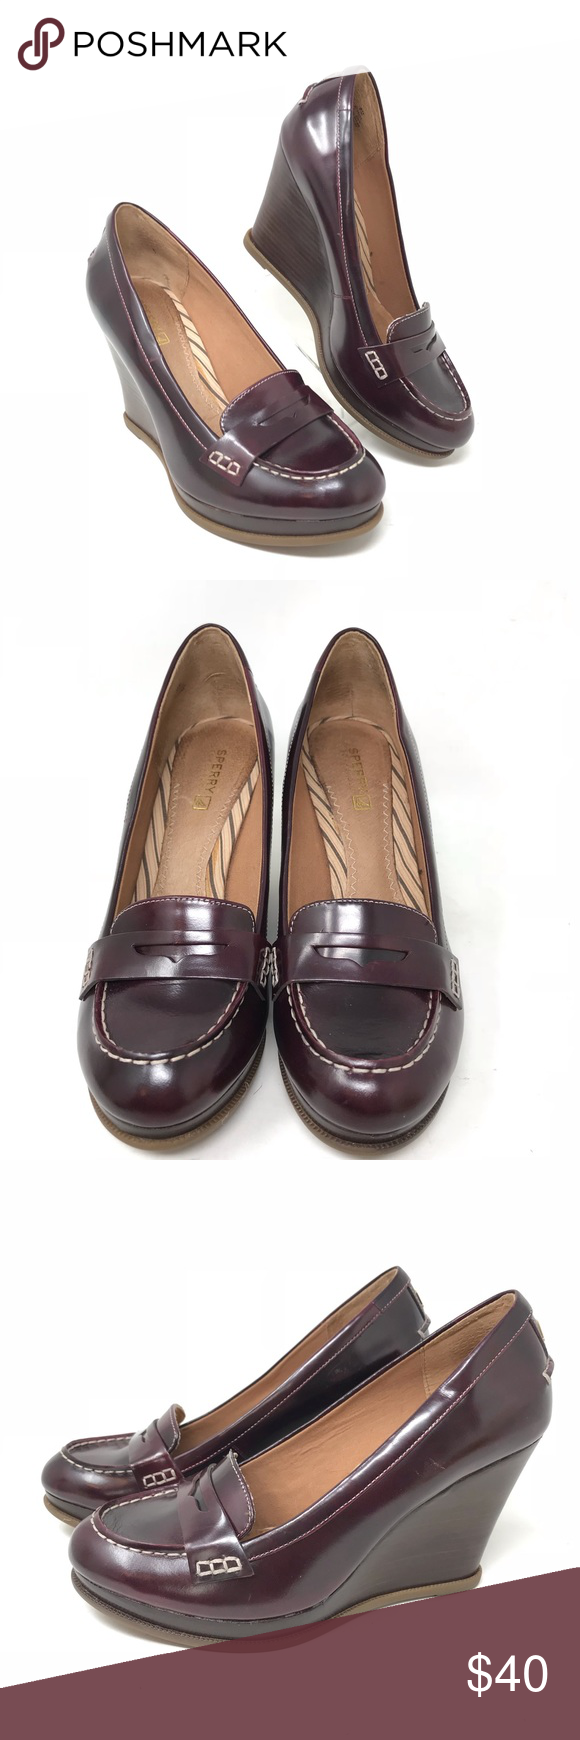 273b87a6ccb Sperry Top Sider Size 8 Leather Penny Loafers Sperry Top Sider Women s Size  8 Windstar Cordovan Leather Penny Loafers Wedge Great condition Sperry Shoes  ...